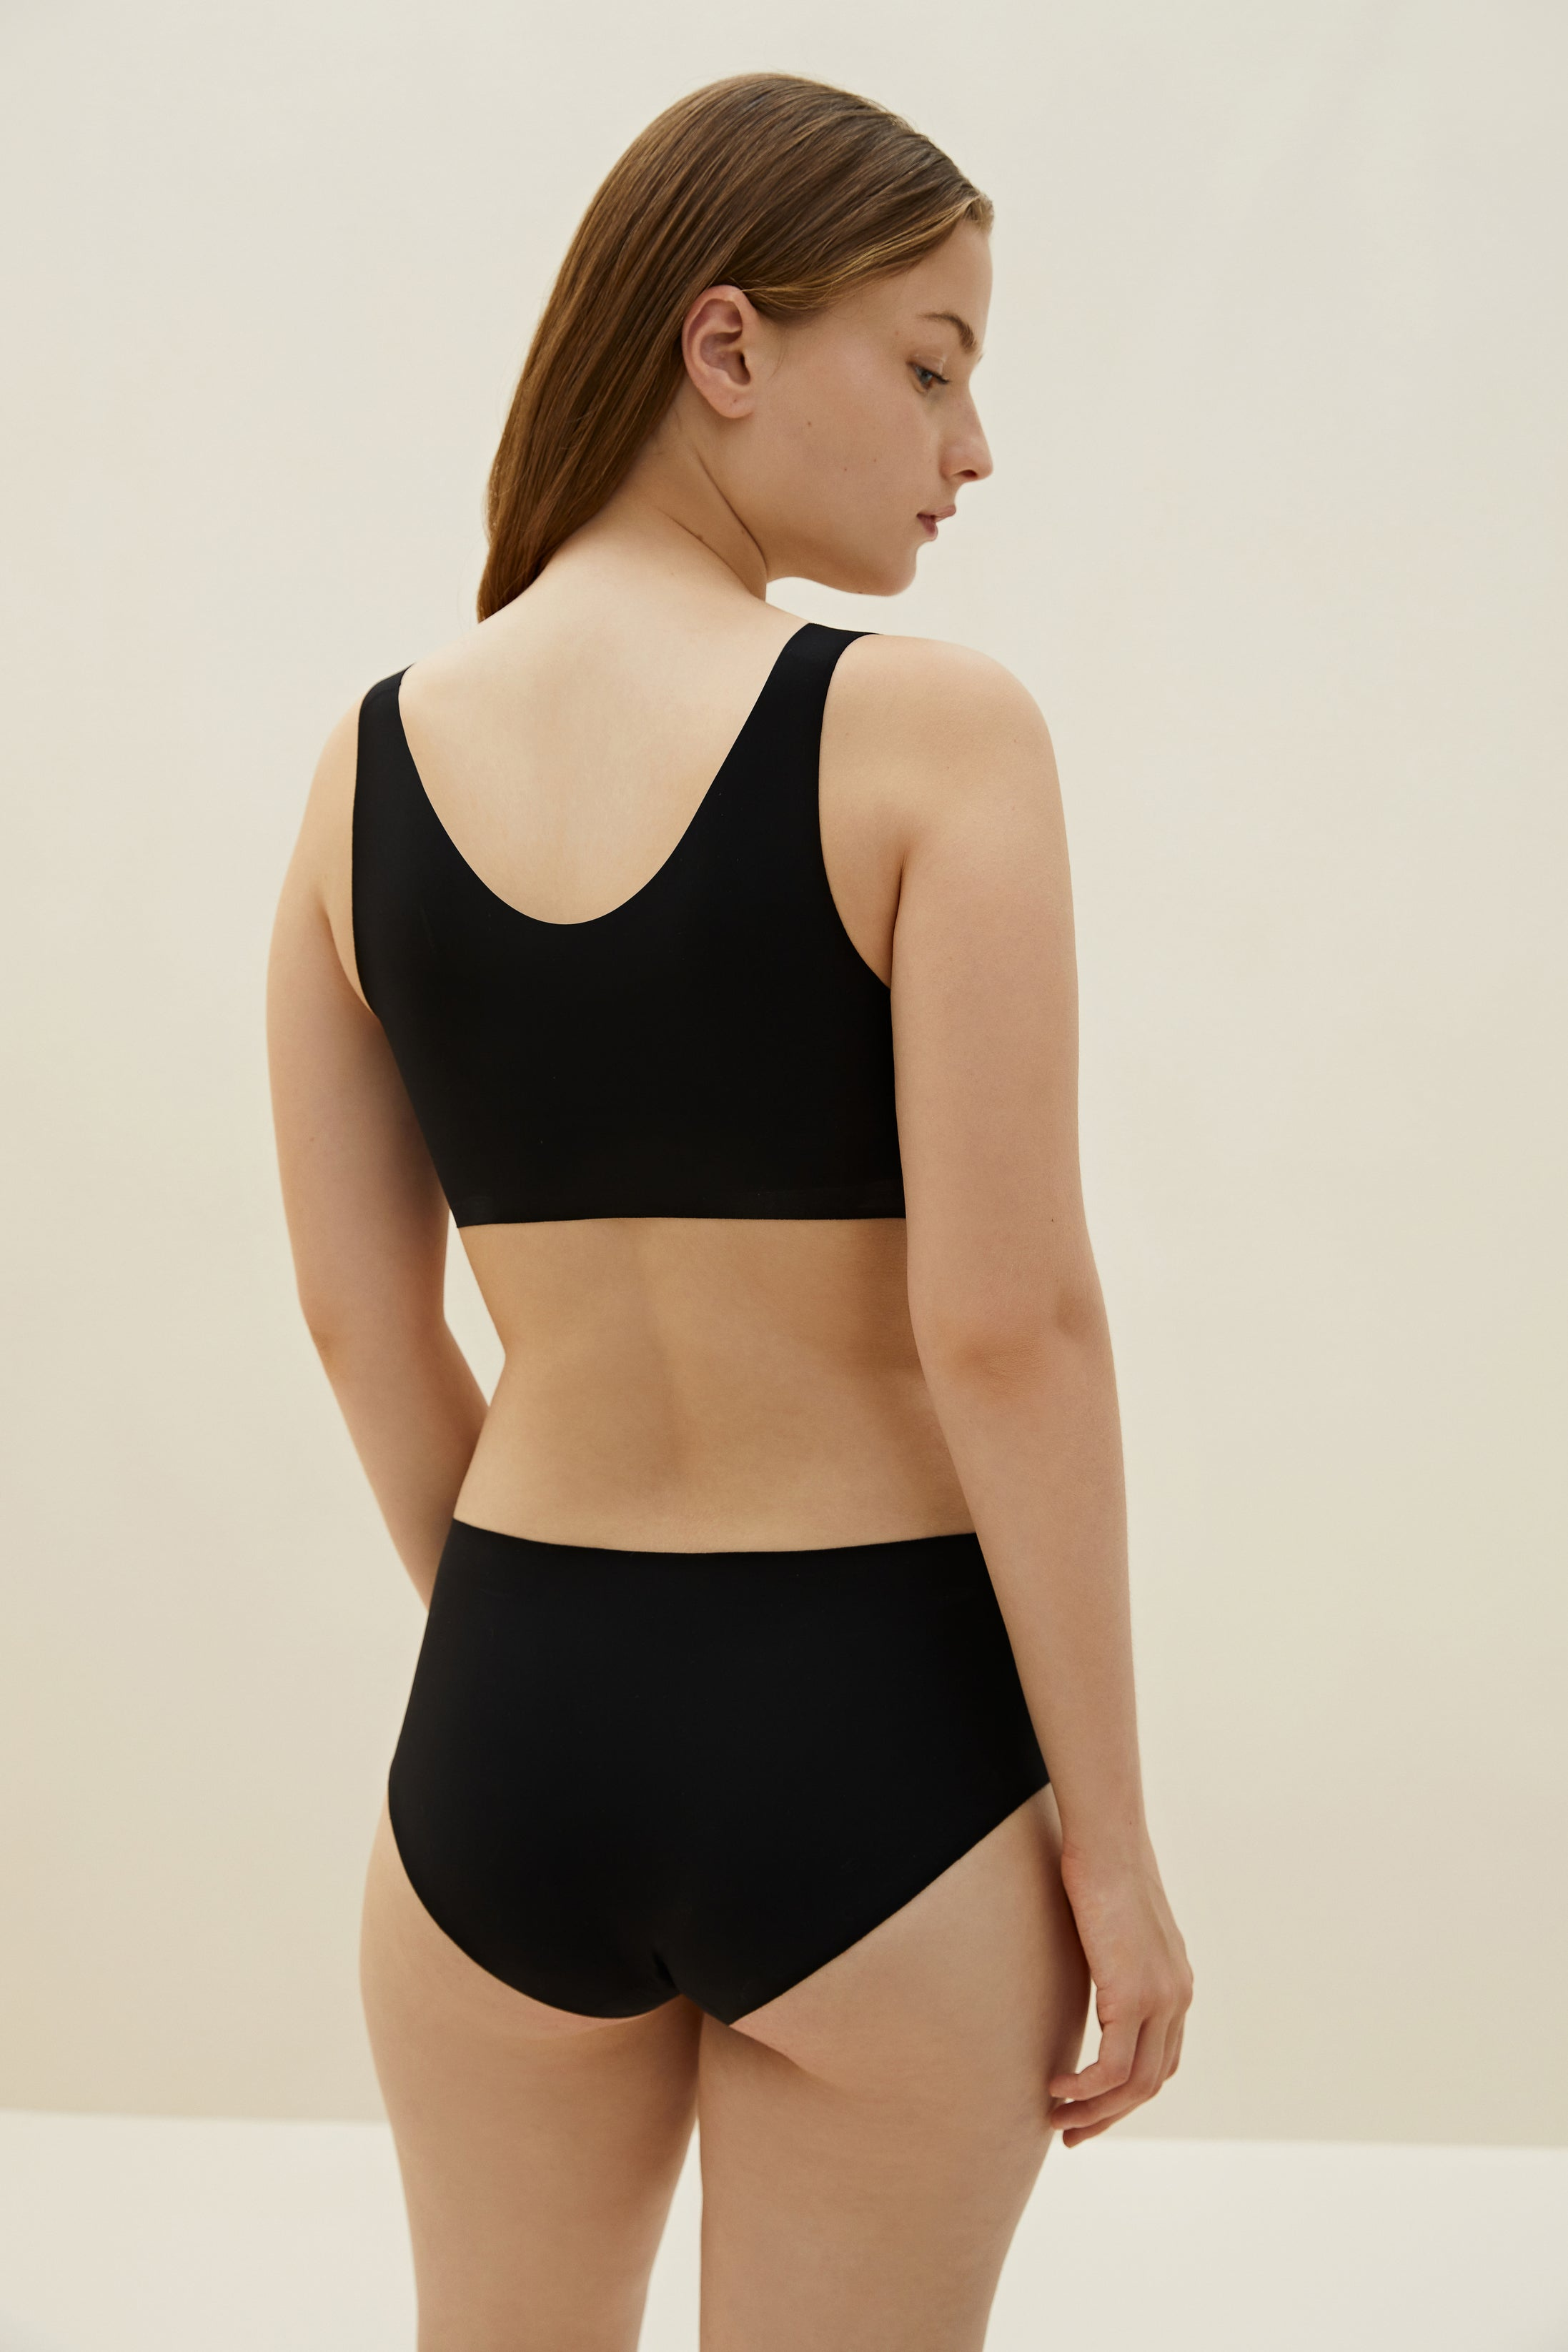 Model wearing NEIWAI's Barely Zero bra and brief set in black.